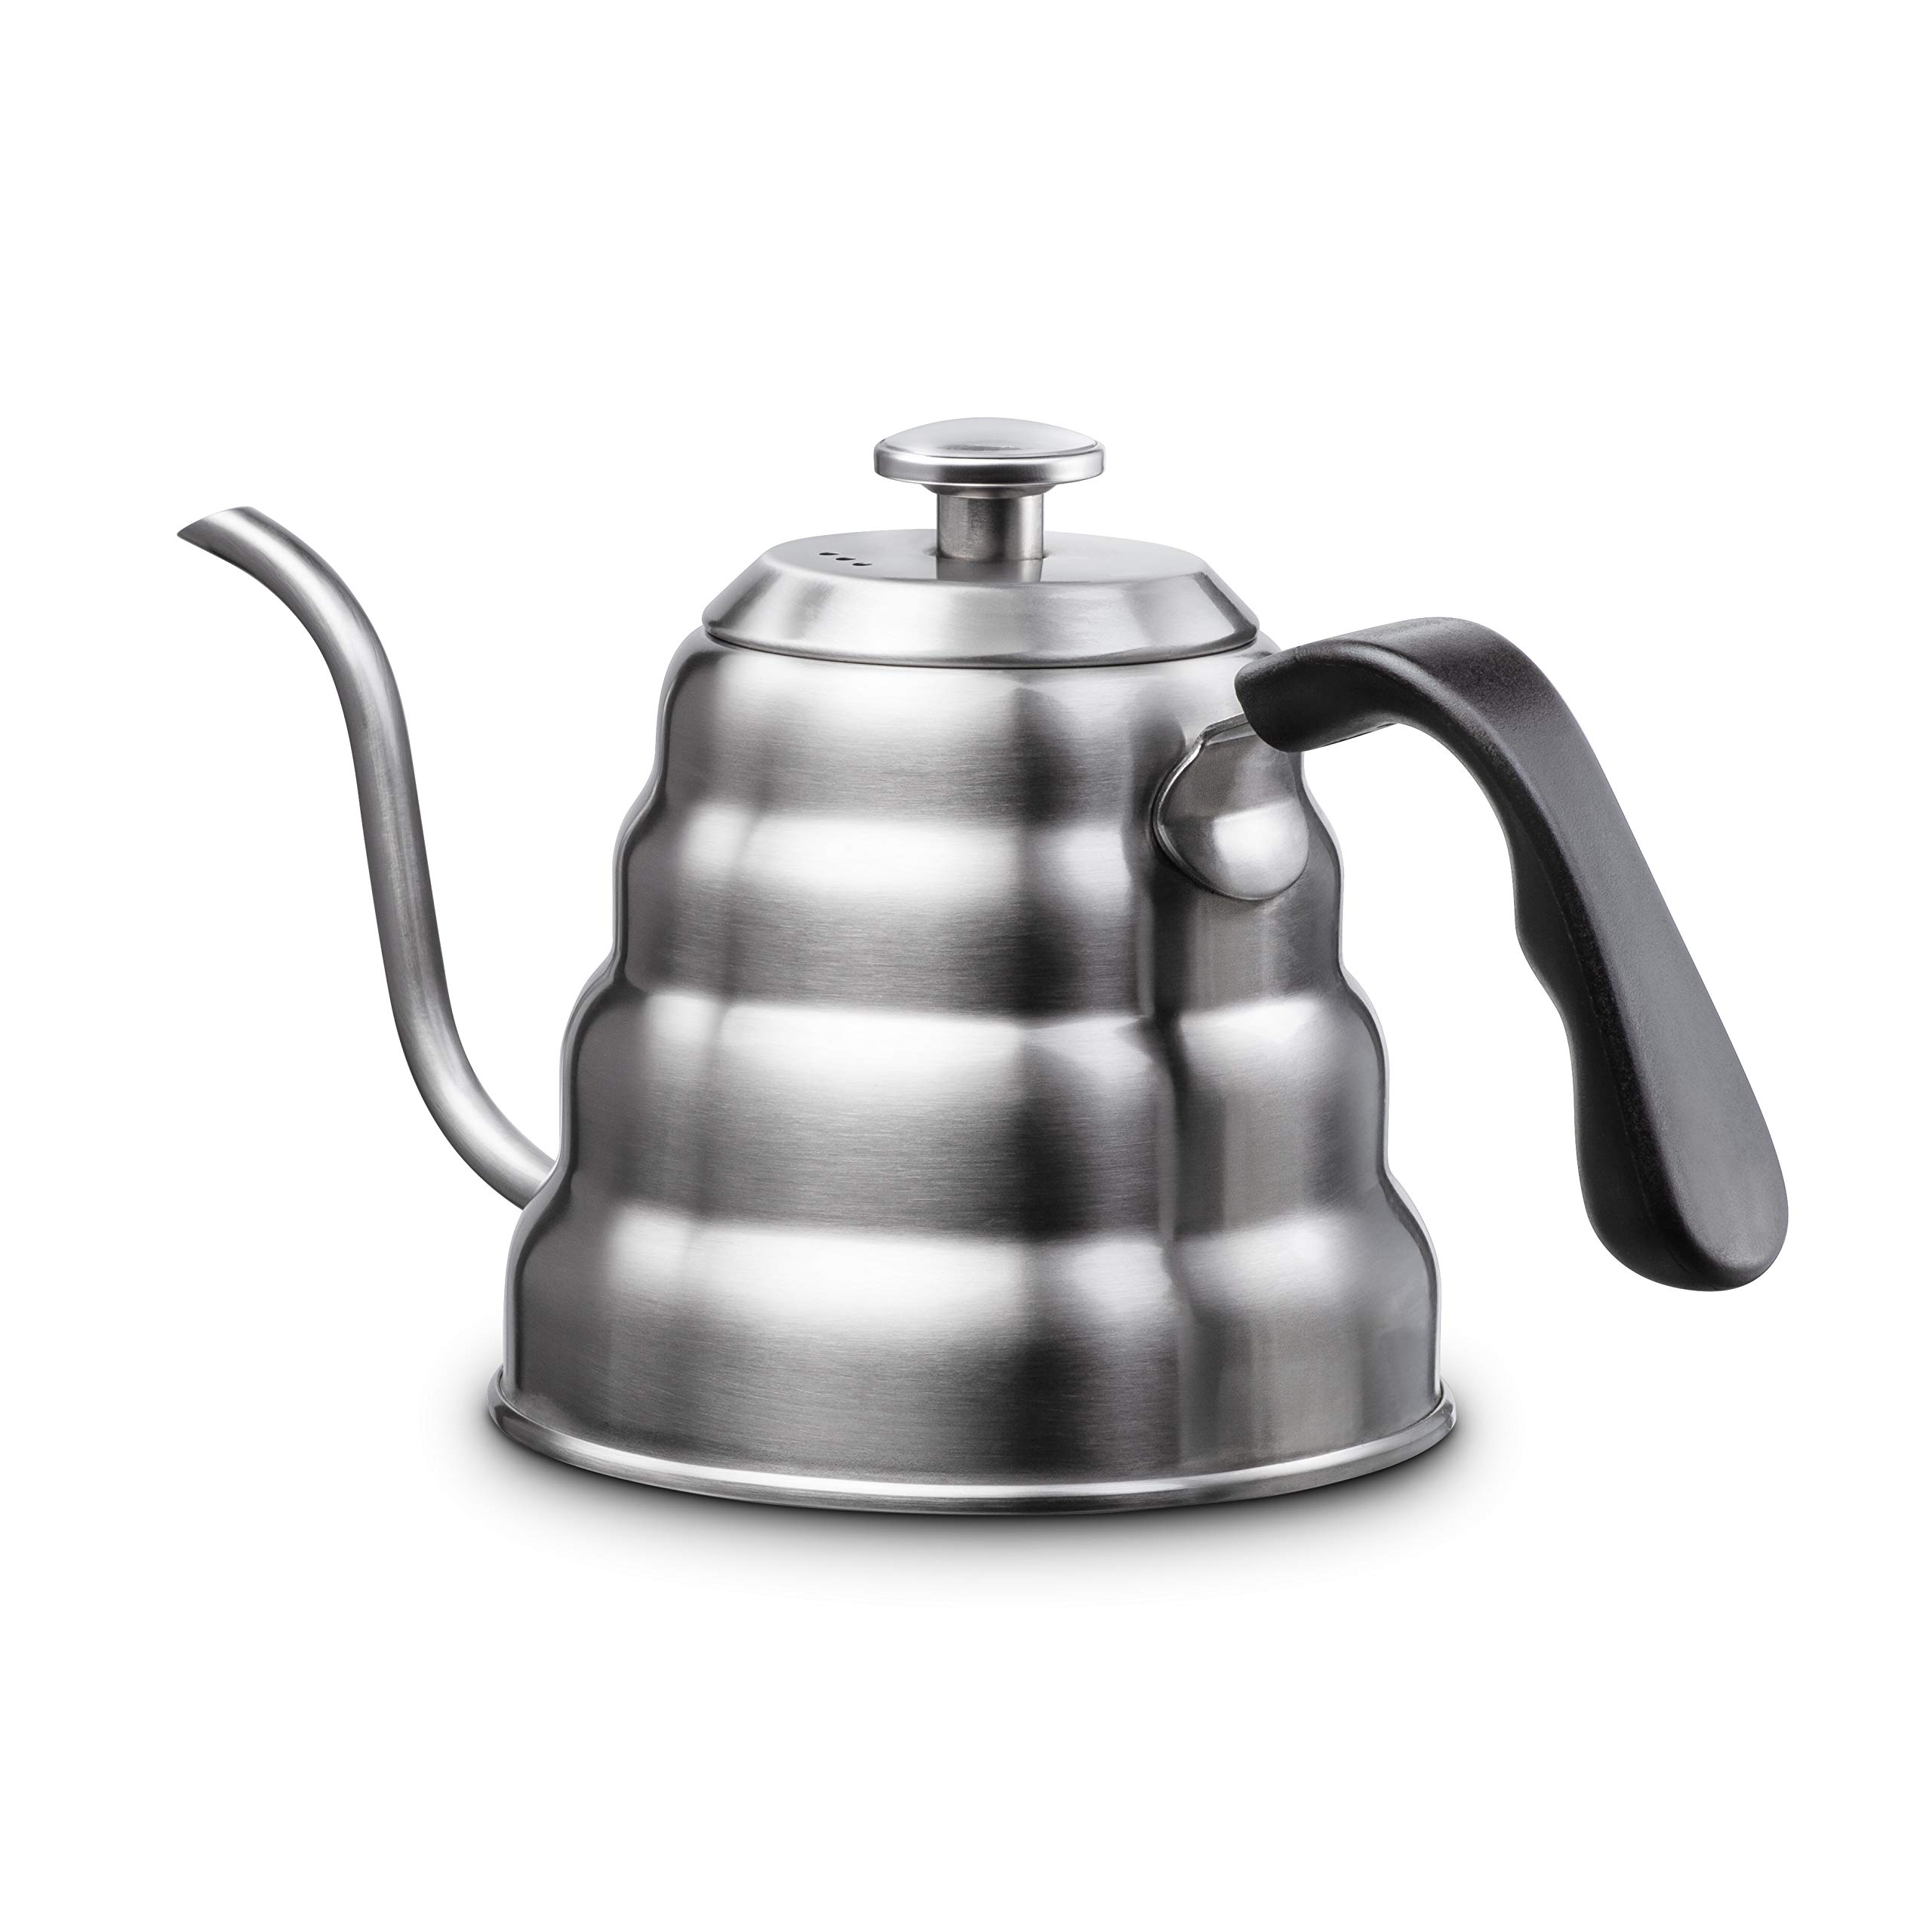 Pour Over Kettle By Unostylez - Built in Thermometer   Gooseneck Spout (1.2L   40floz) - Rust Proof Premium Grade Stainless Steel   Precise Temperature Measuring For Drip Coffee   Tea by Unostylez